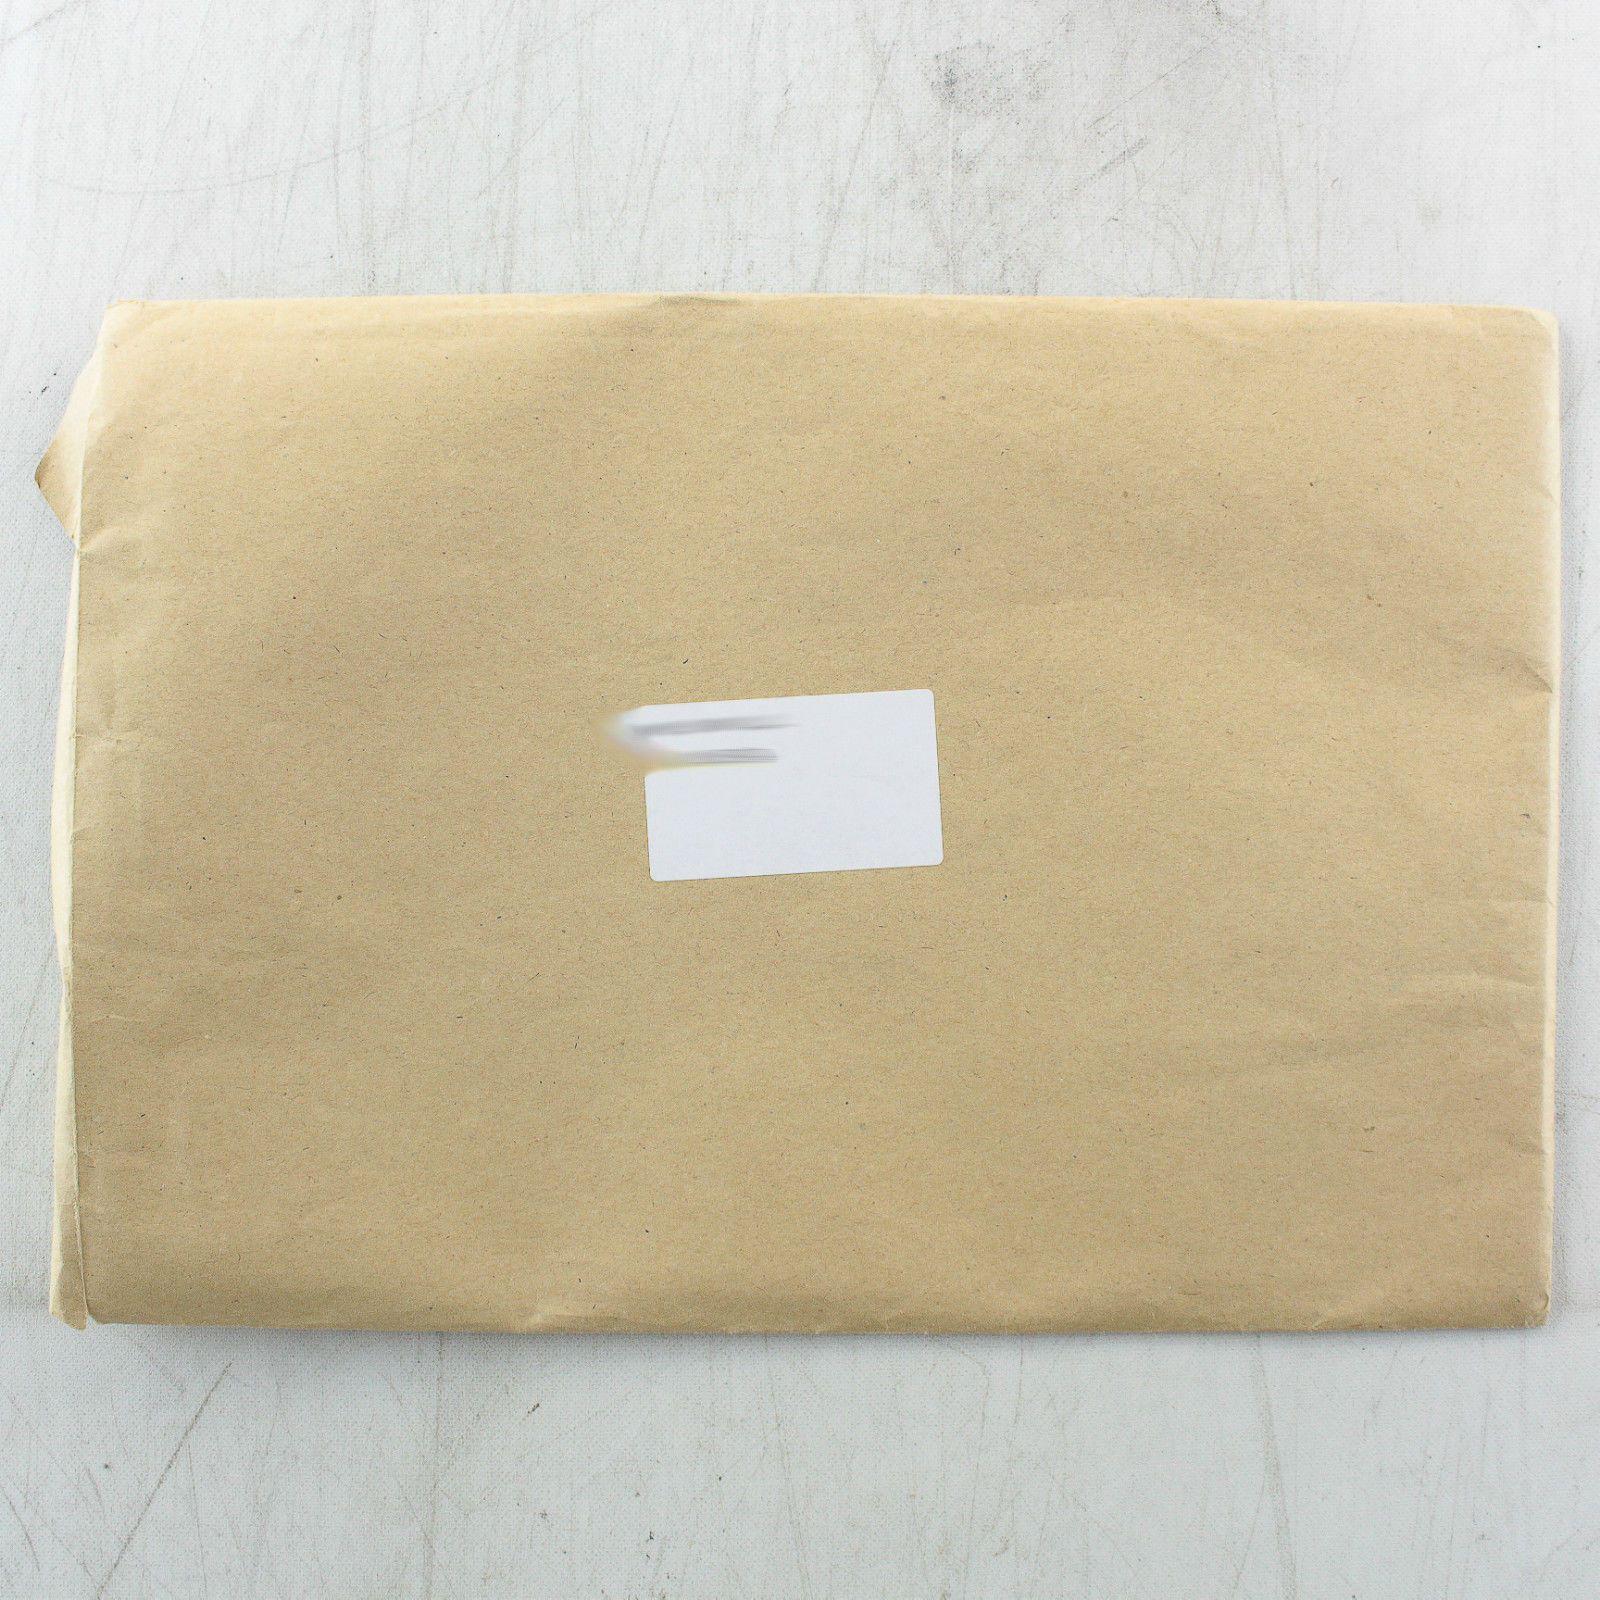 An Envelope Containing A Quantity Of Bank Of Scotland Personal